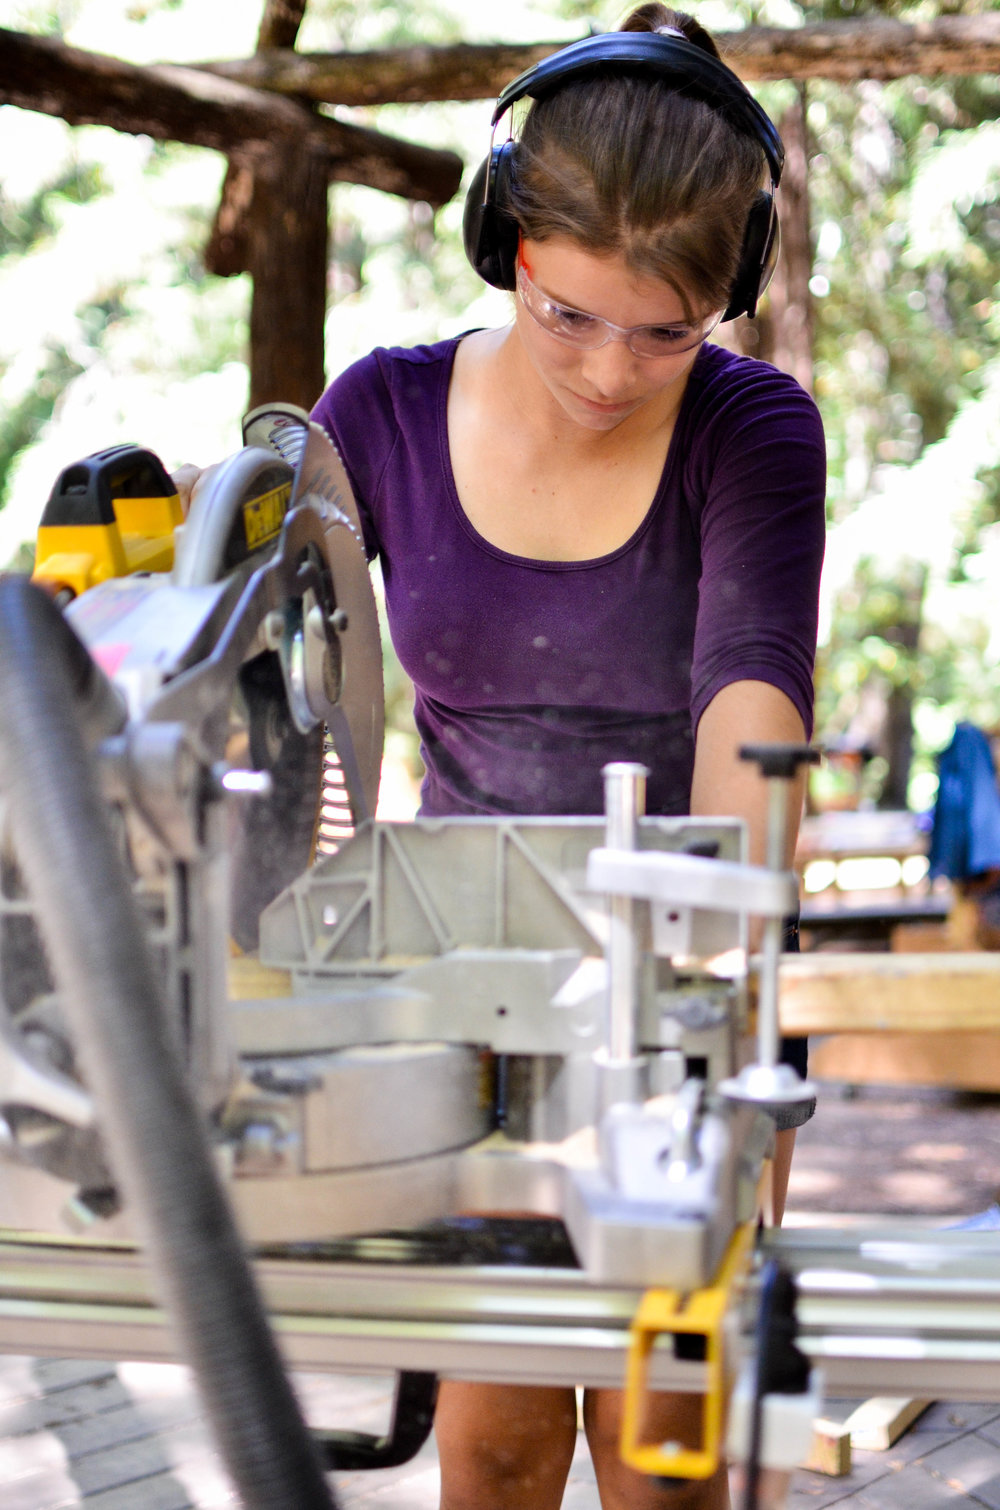 Teenage Girl uses a Chopsaw